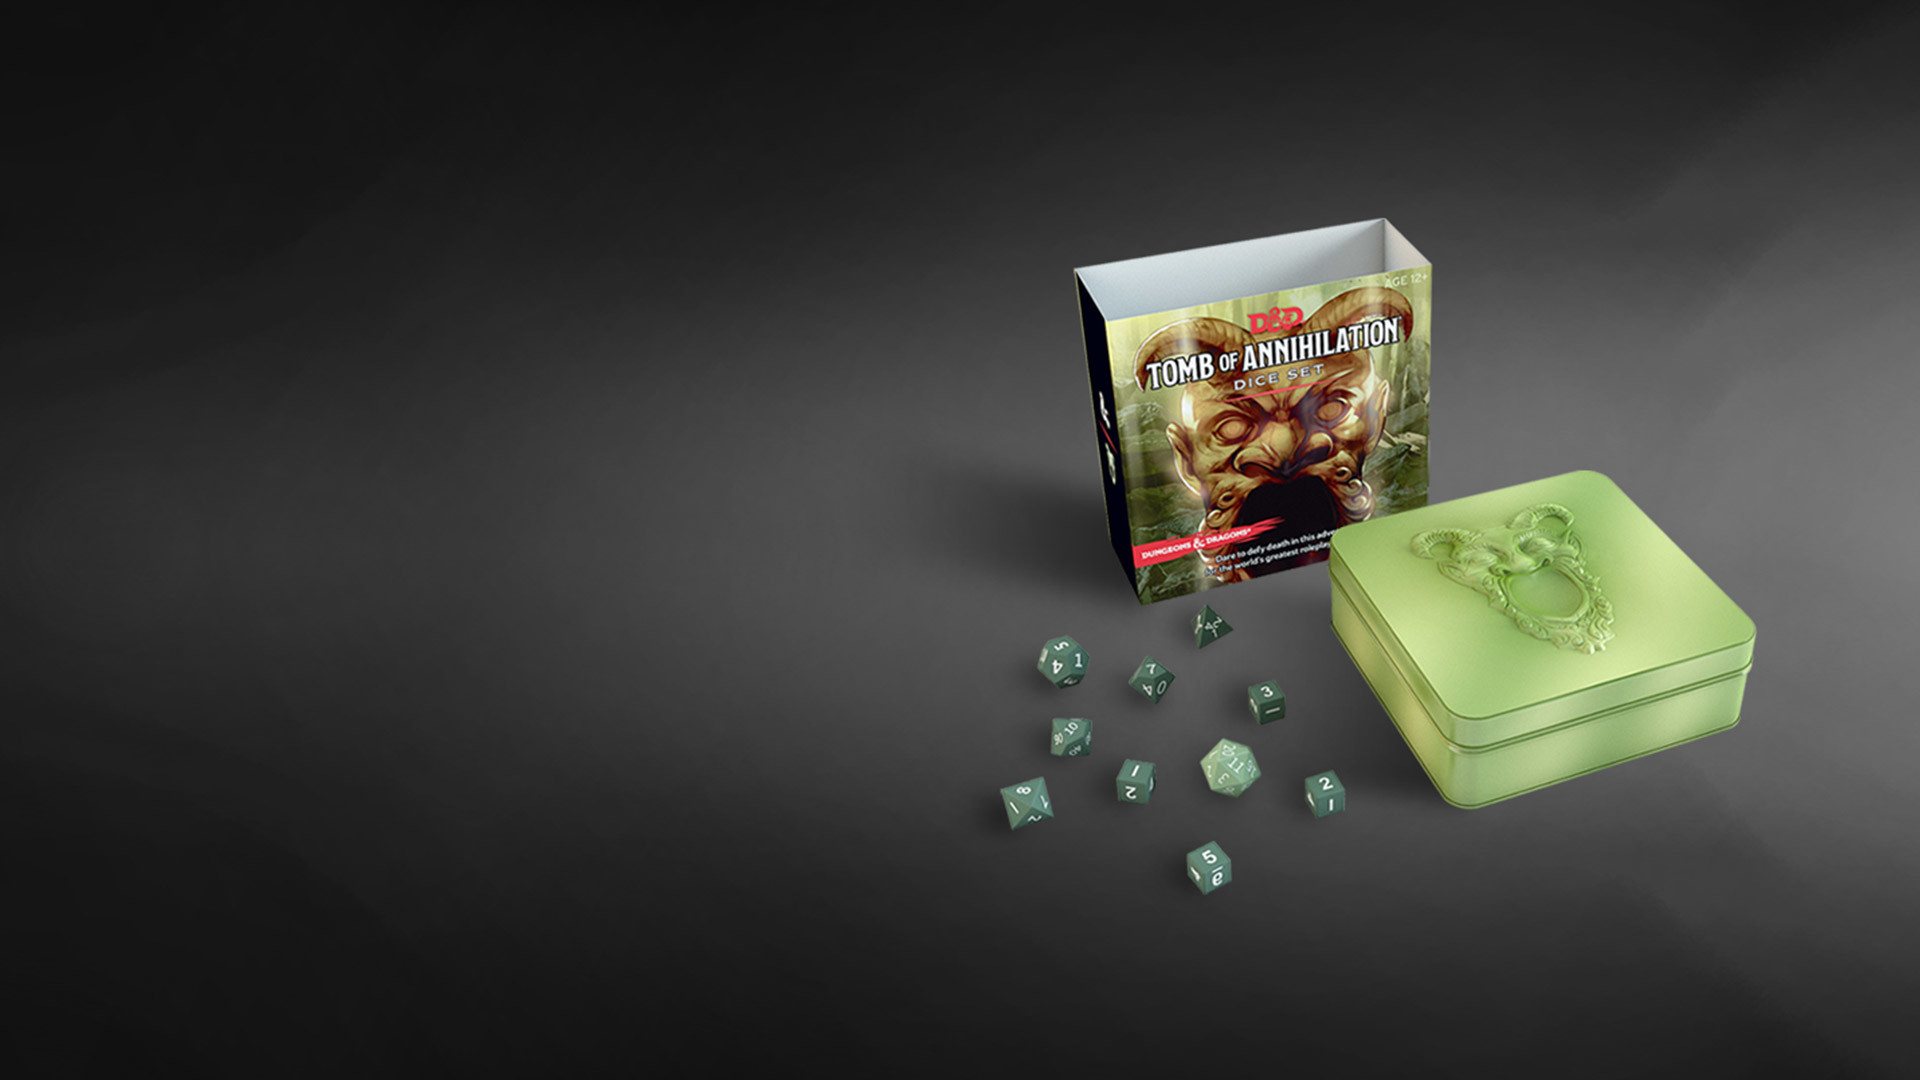 Res: 1920x1080, D&D's Tomb of Annihiltion dice set retails for $19.95. Buy a set here.